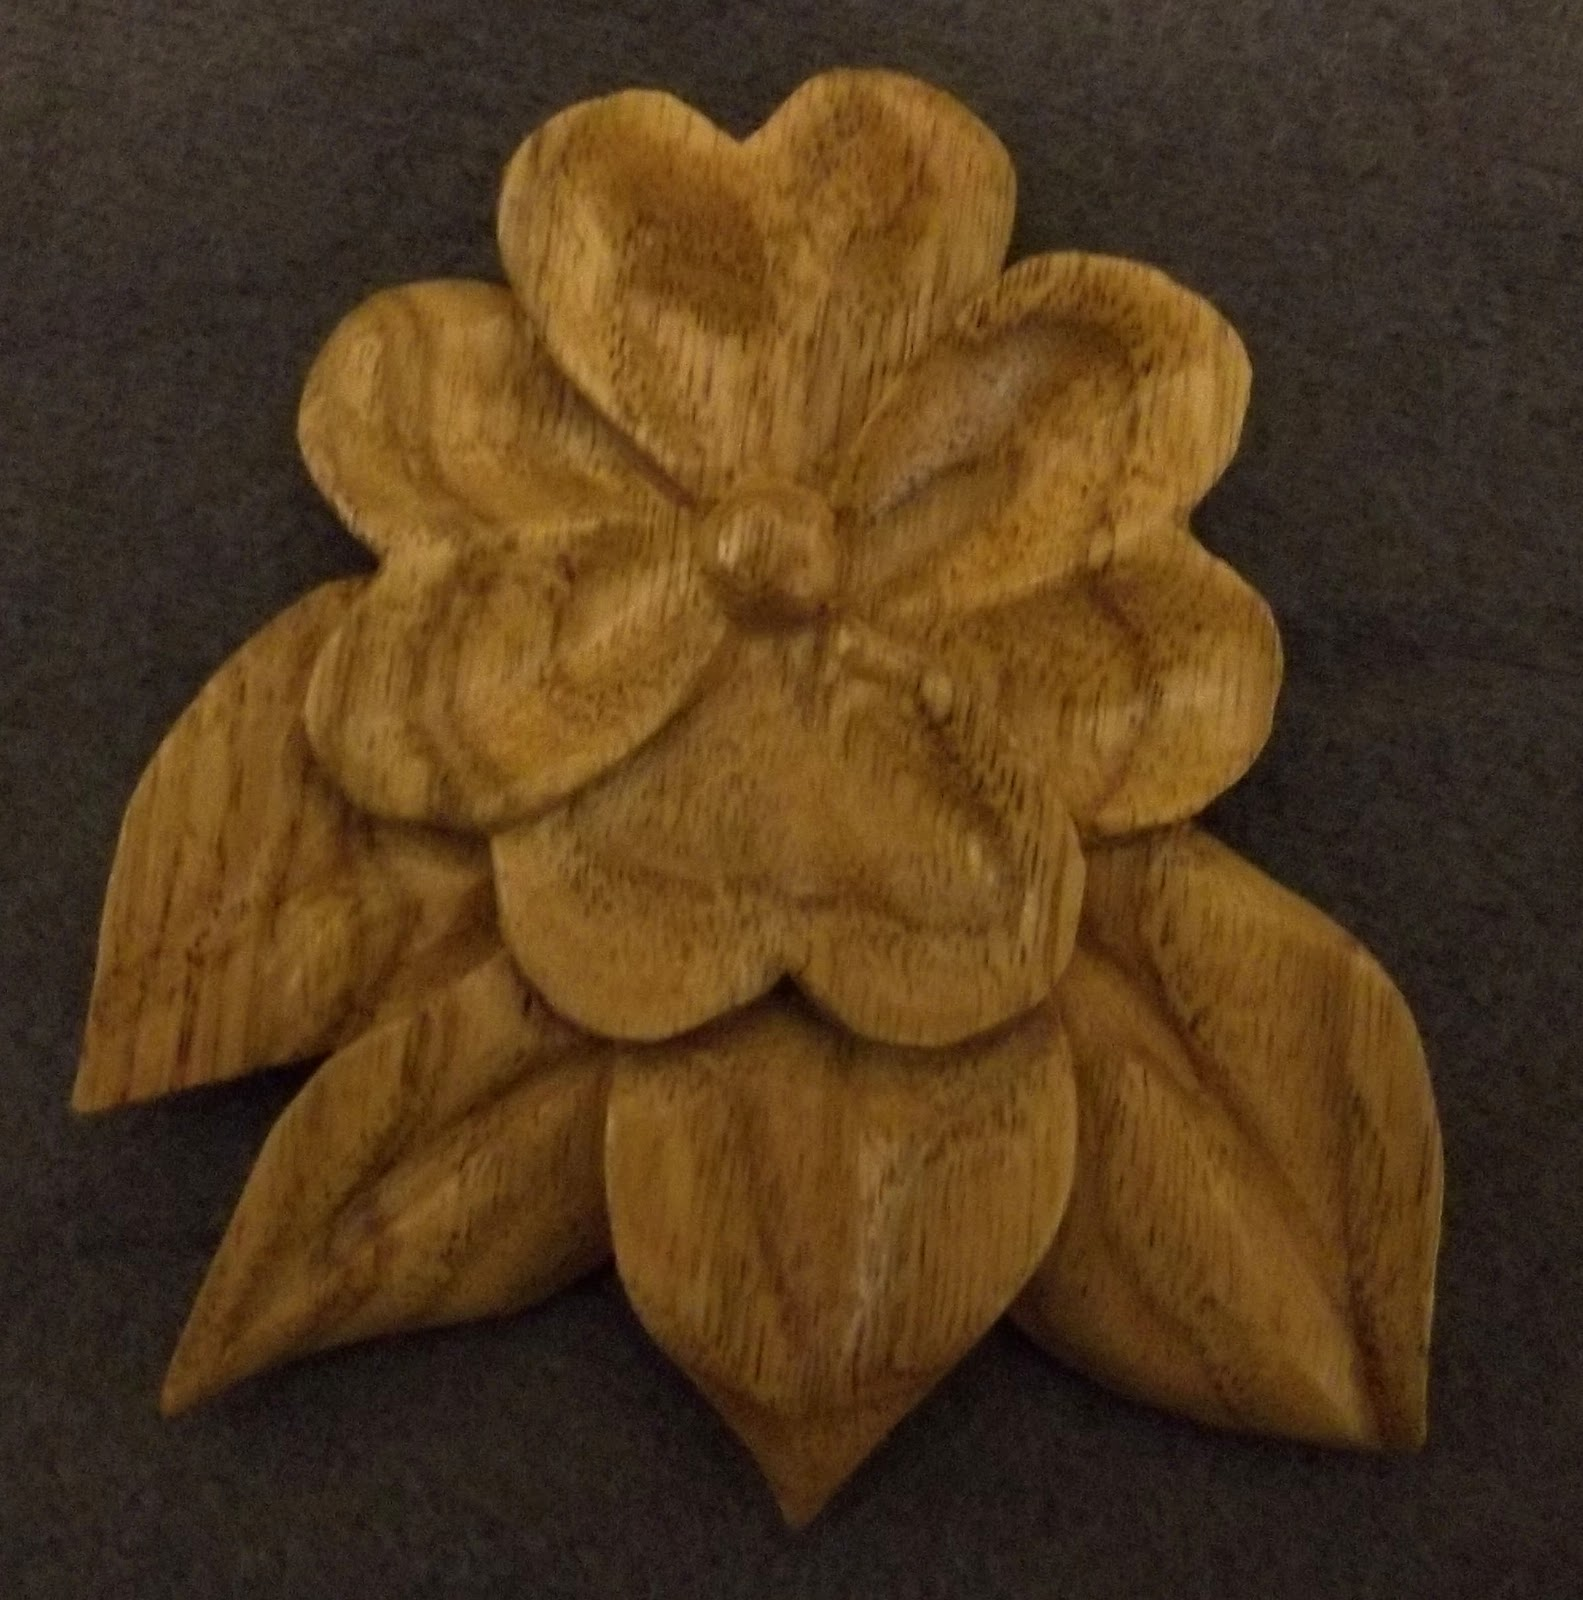 Easy Wood Carving Projects Plus a basic wood carving